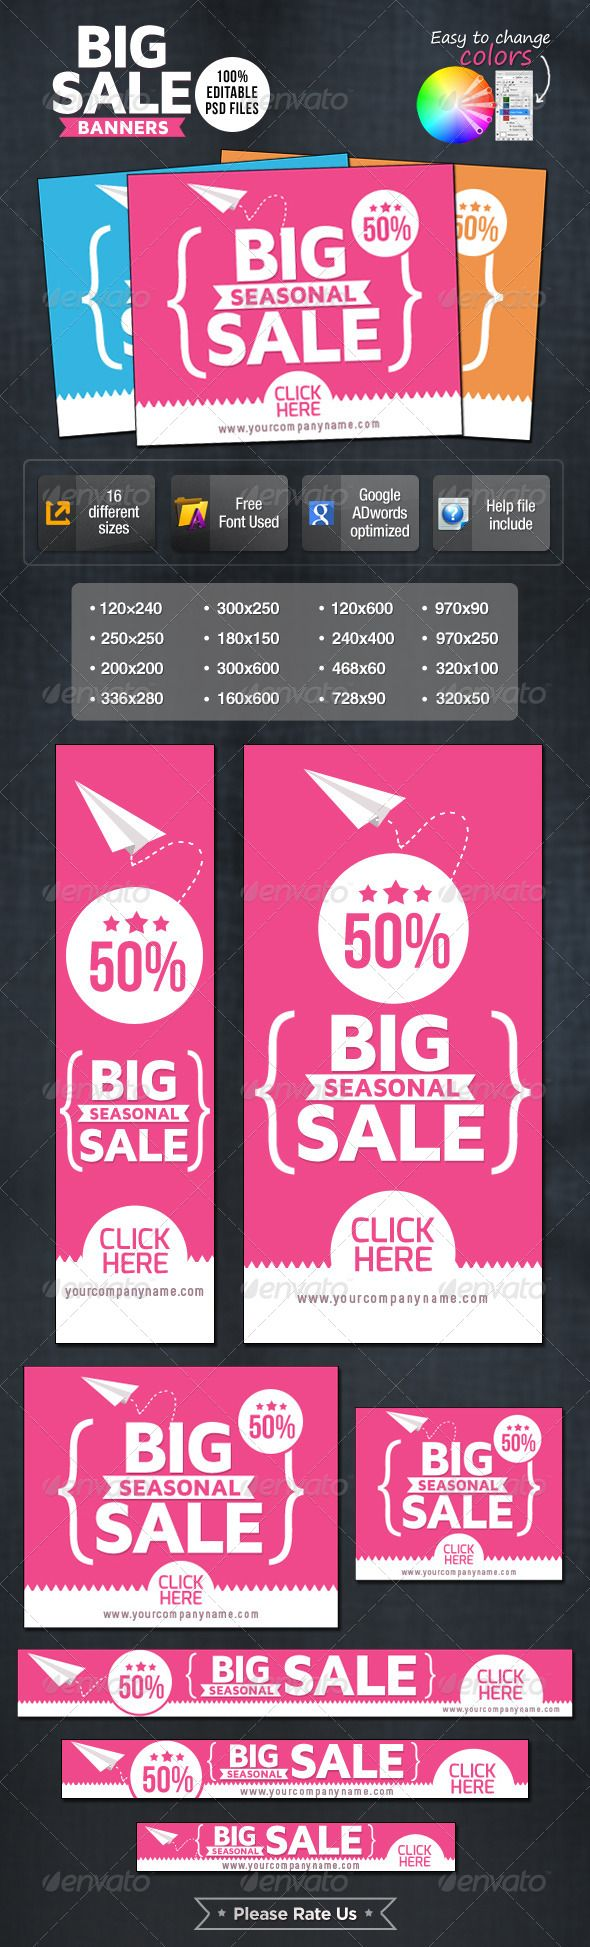 Big Sale Web Banners Template PSD | Buy and Download: http://graphicriver.net/item/big-sale-banners/7007075?WT.ac=category_thumb&WT.z_author=doto&ref=ksioks